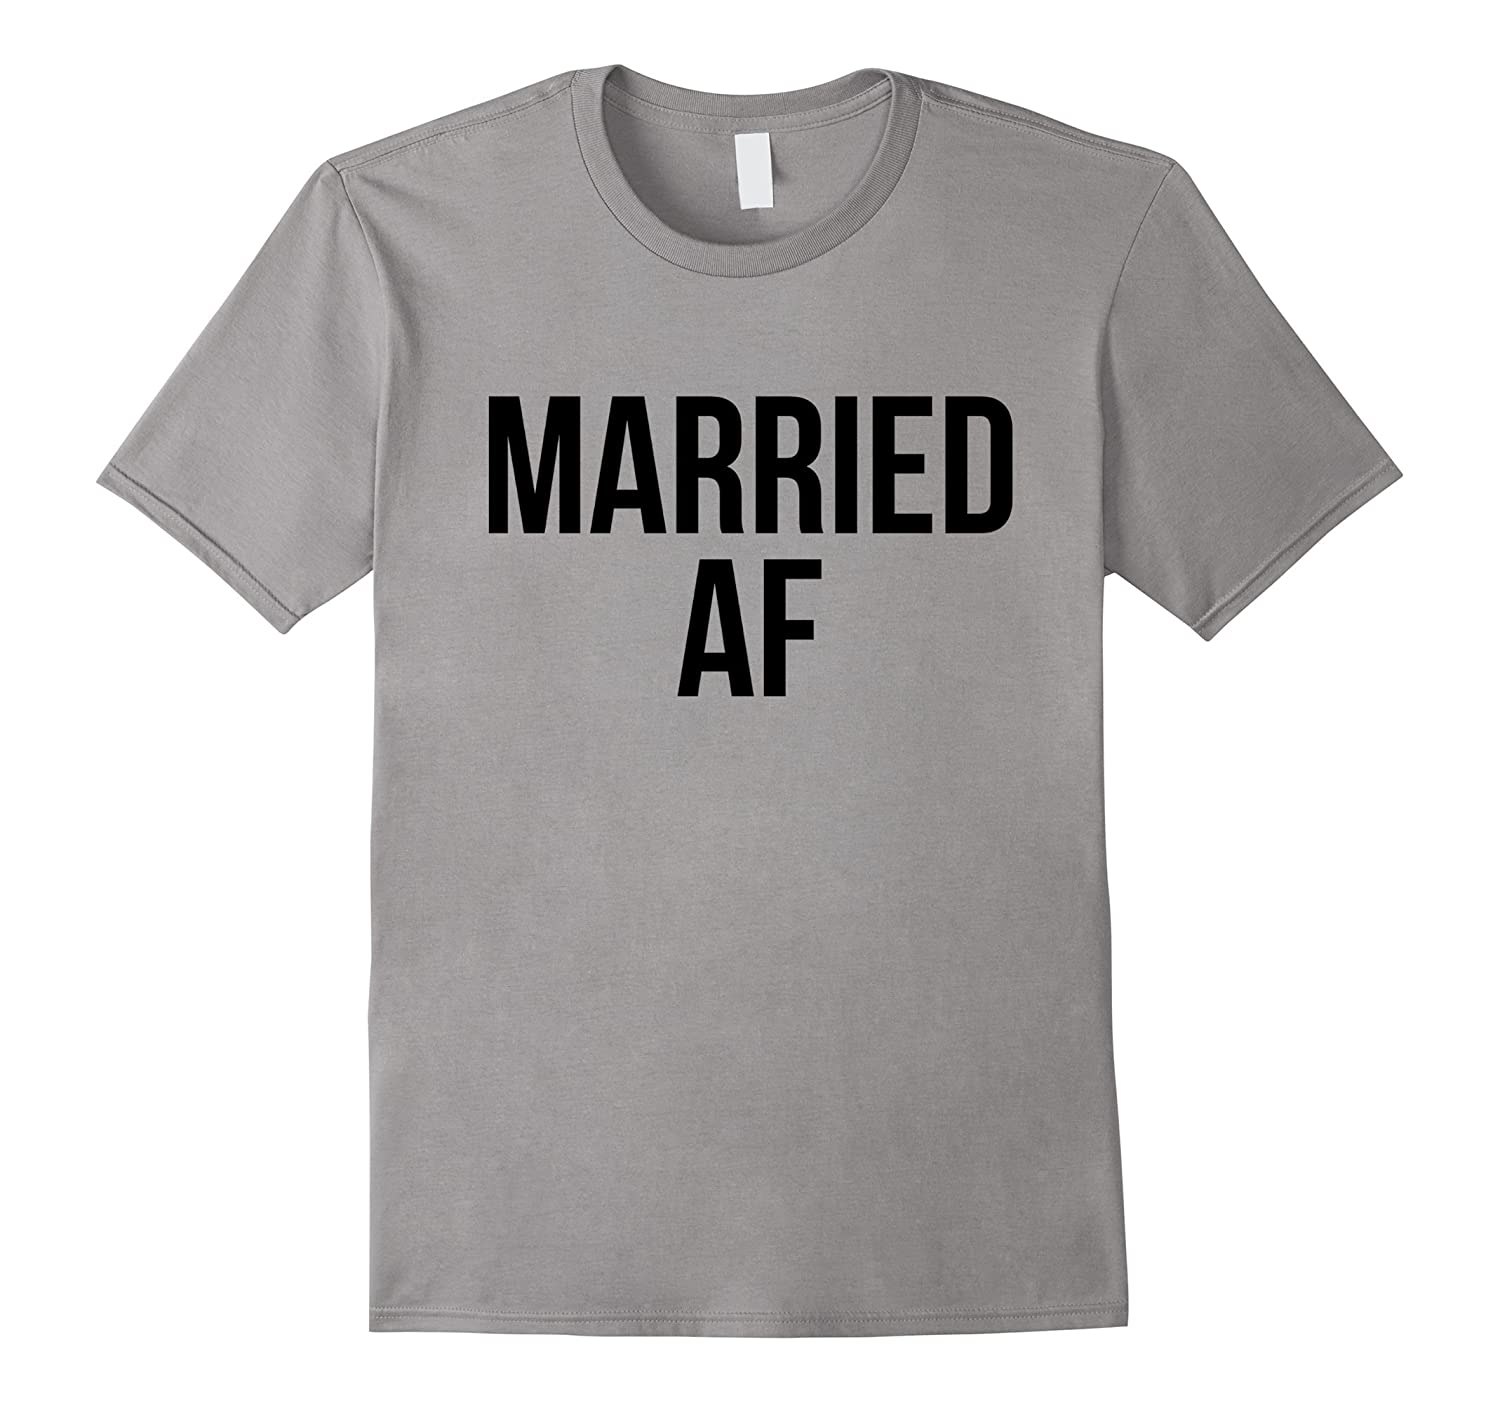 MARRIED AF Honeymoon Tee Bride Tshirt Bridal Groom Shirt-Vaci